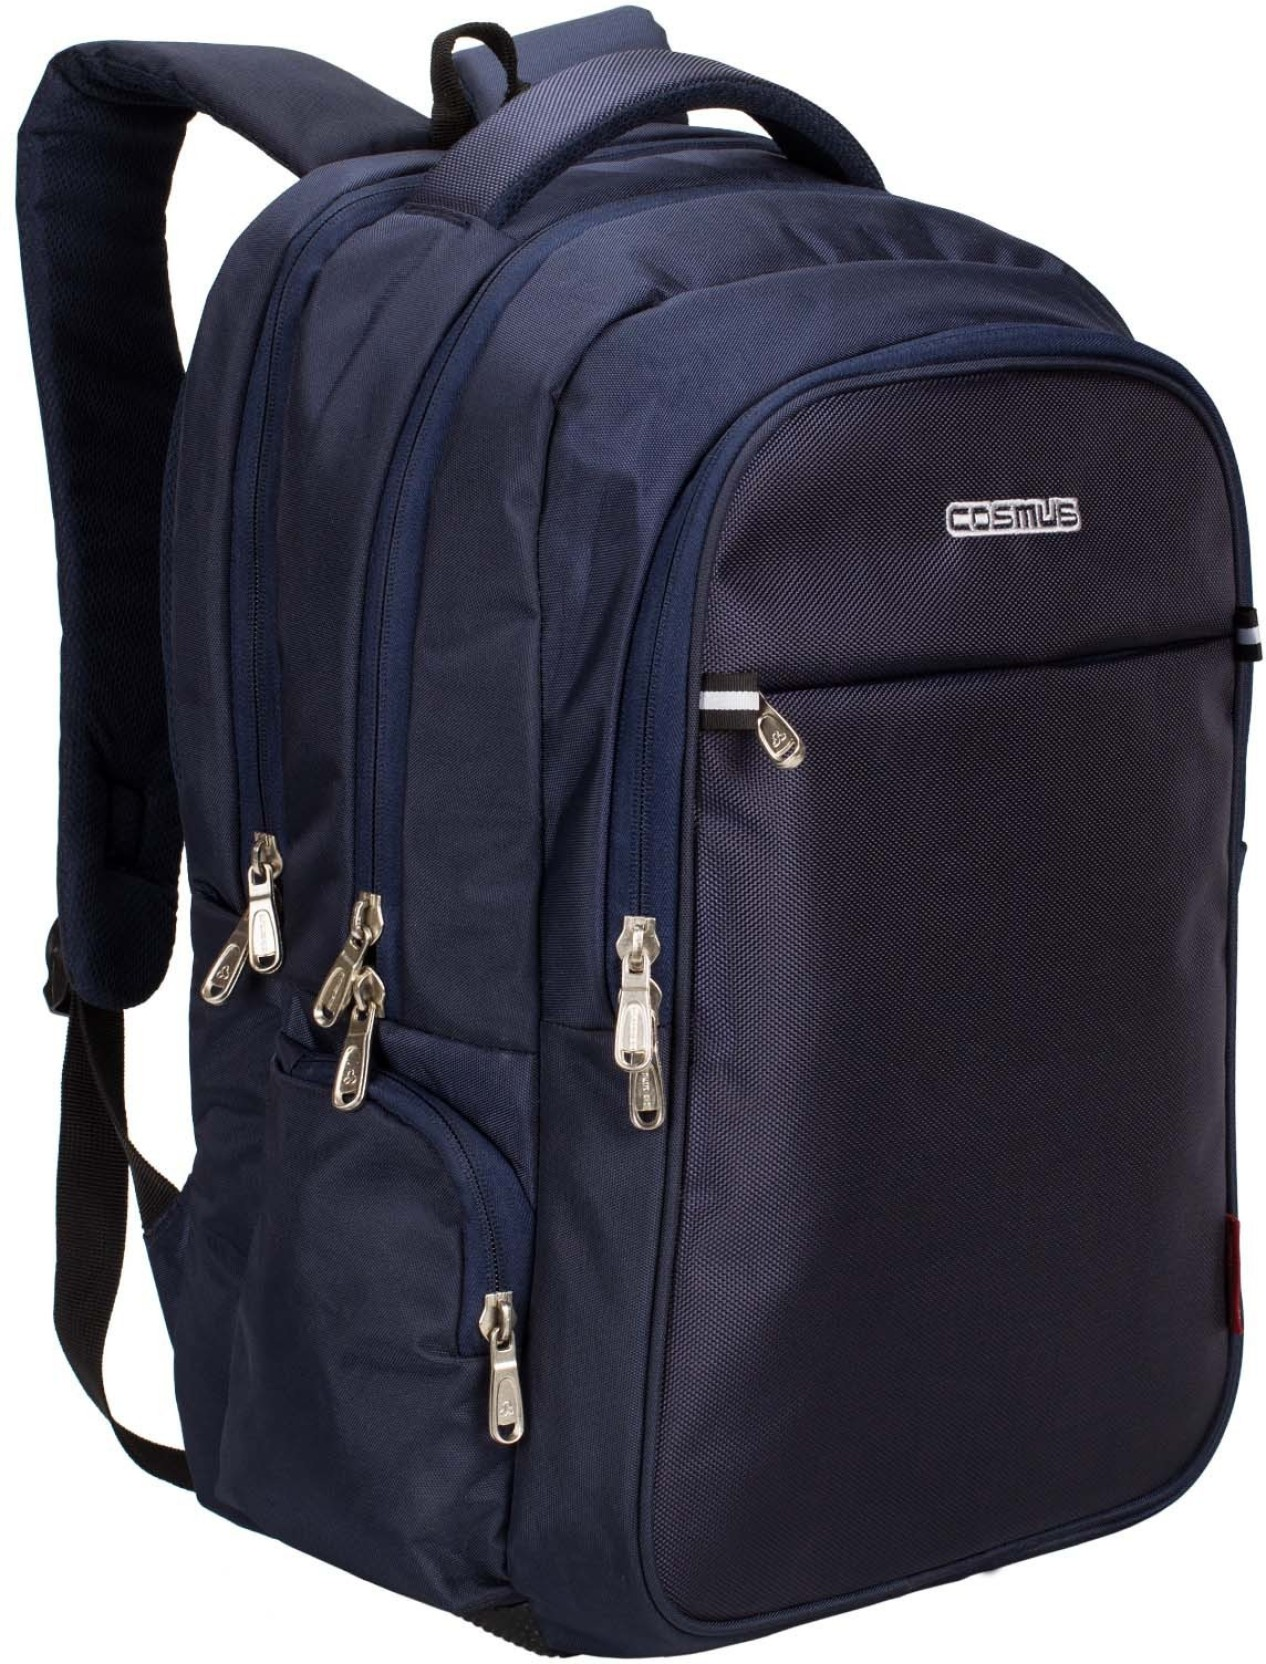 Cosmus 15.6 inch Laptop Backpack Navy Blue - Price in India ... d7e7544110ce1